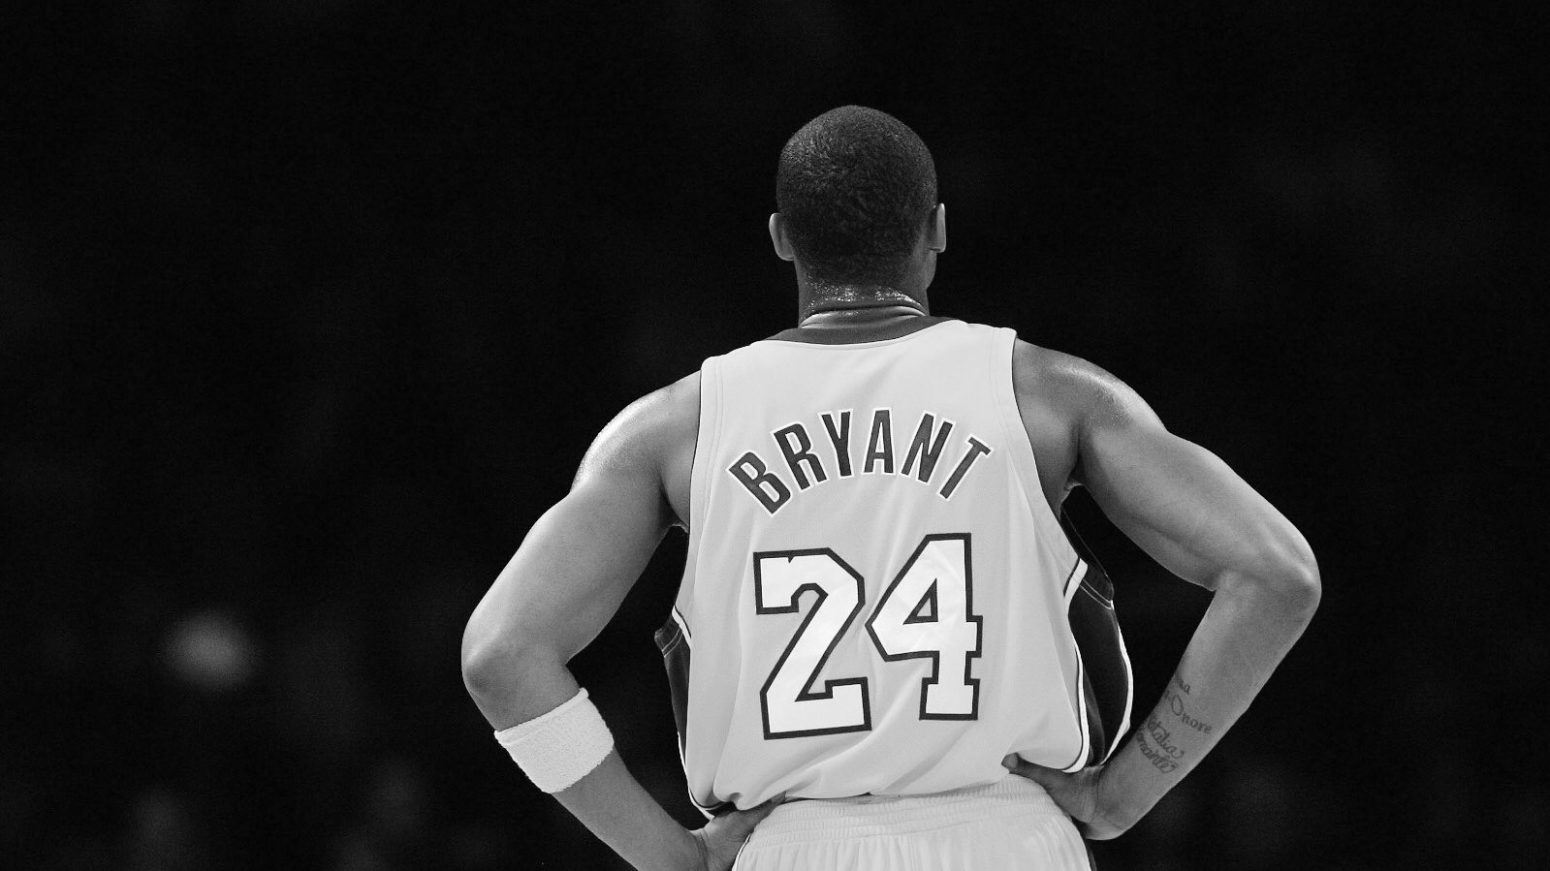 Liverpool FC players pay tribute to NBA legend Kobe Bryant following tragic accident